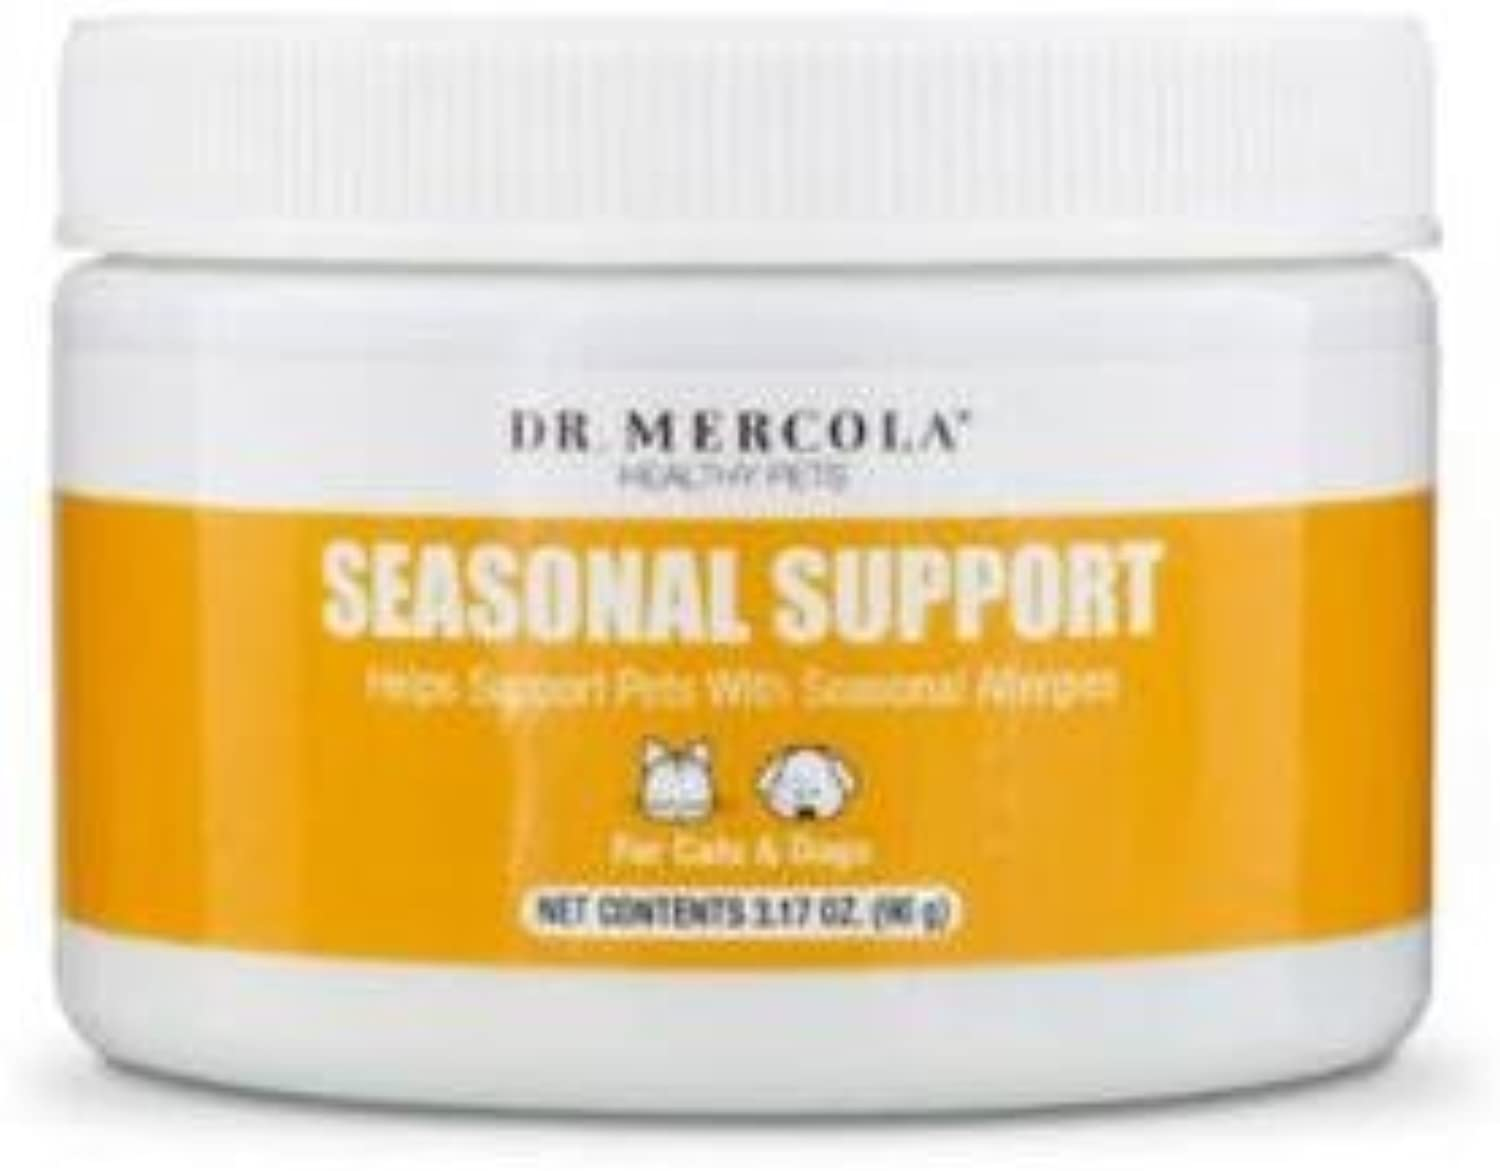 Dr Mercola seasonal Support for Dogs and Cats